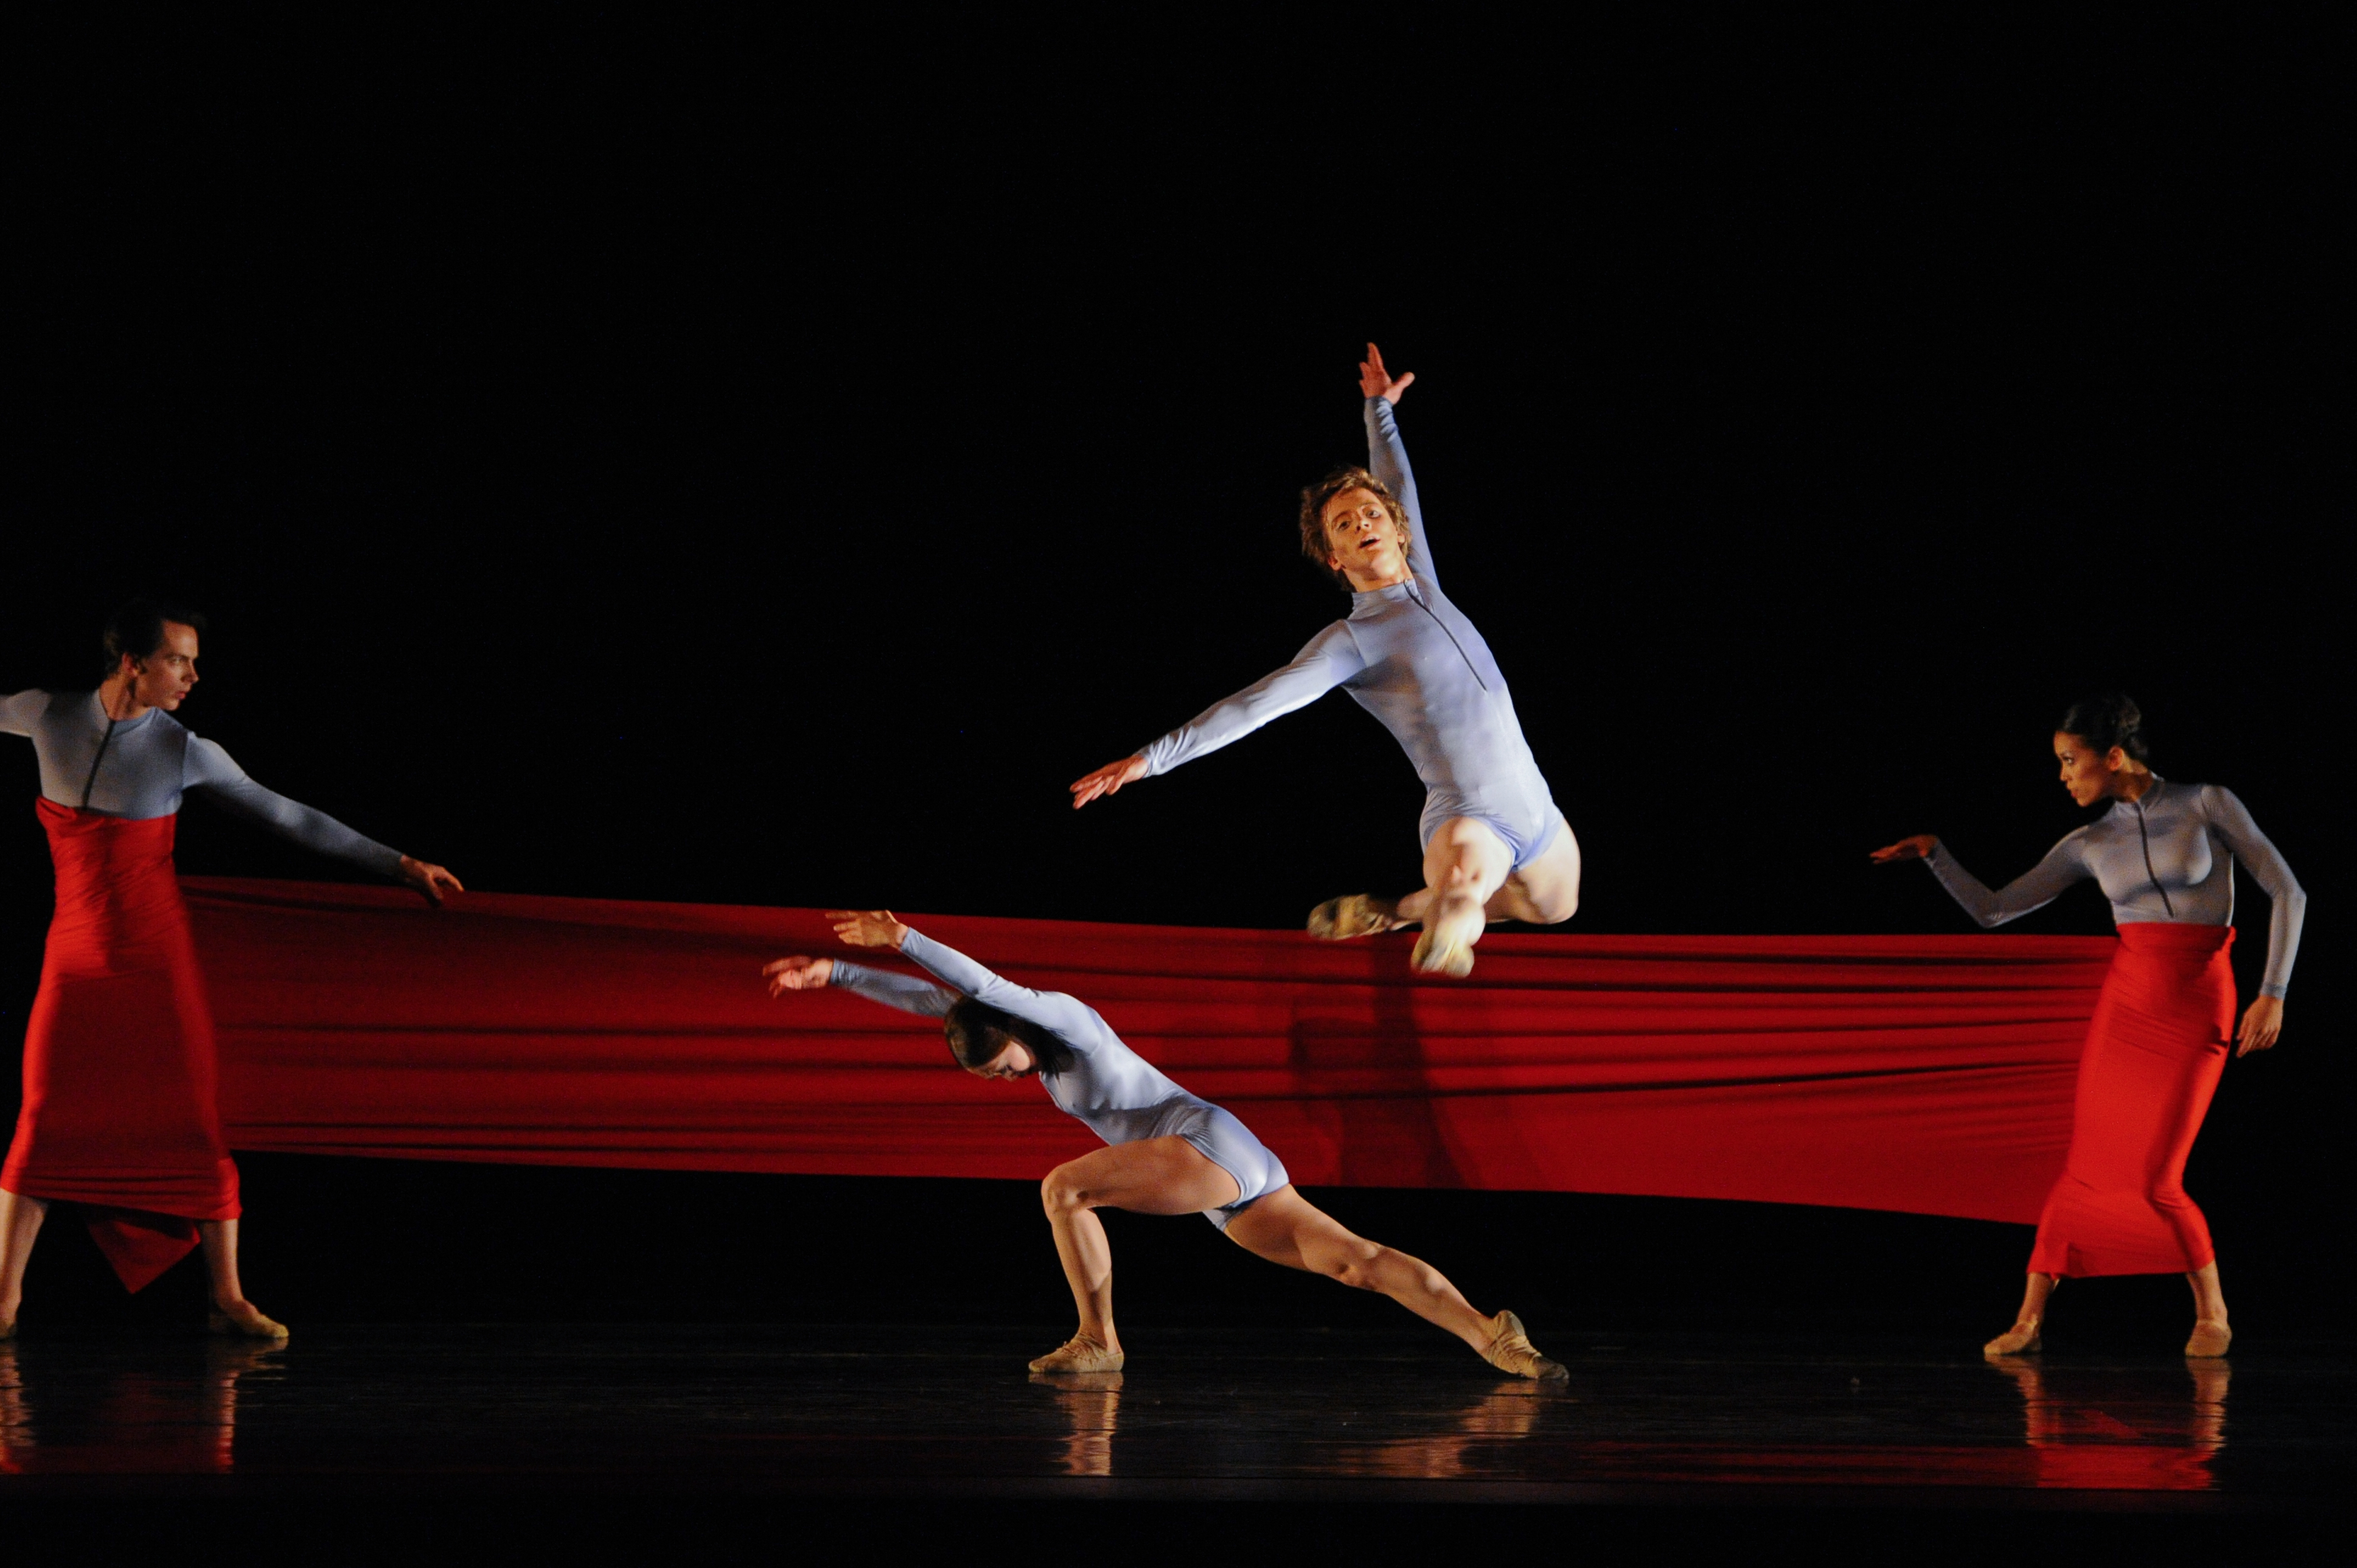 World Ballet Competition Brings Renowned Performers  to Orlando for Premier Event